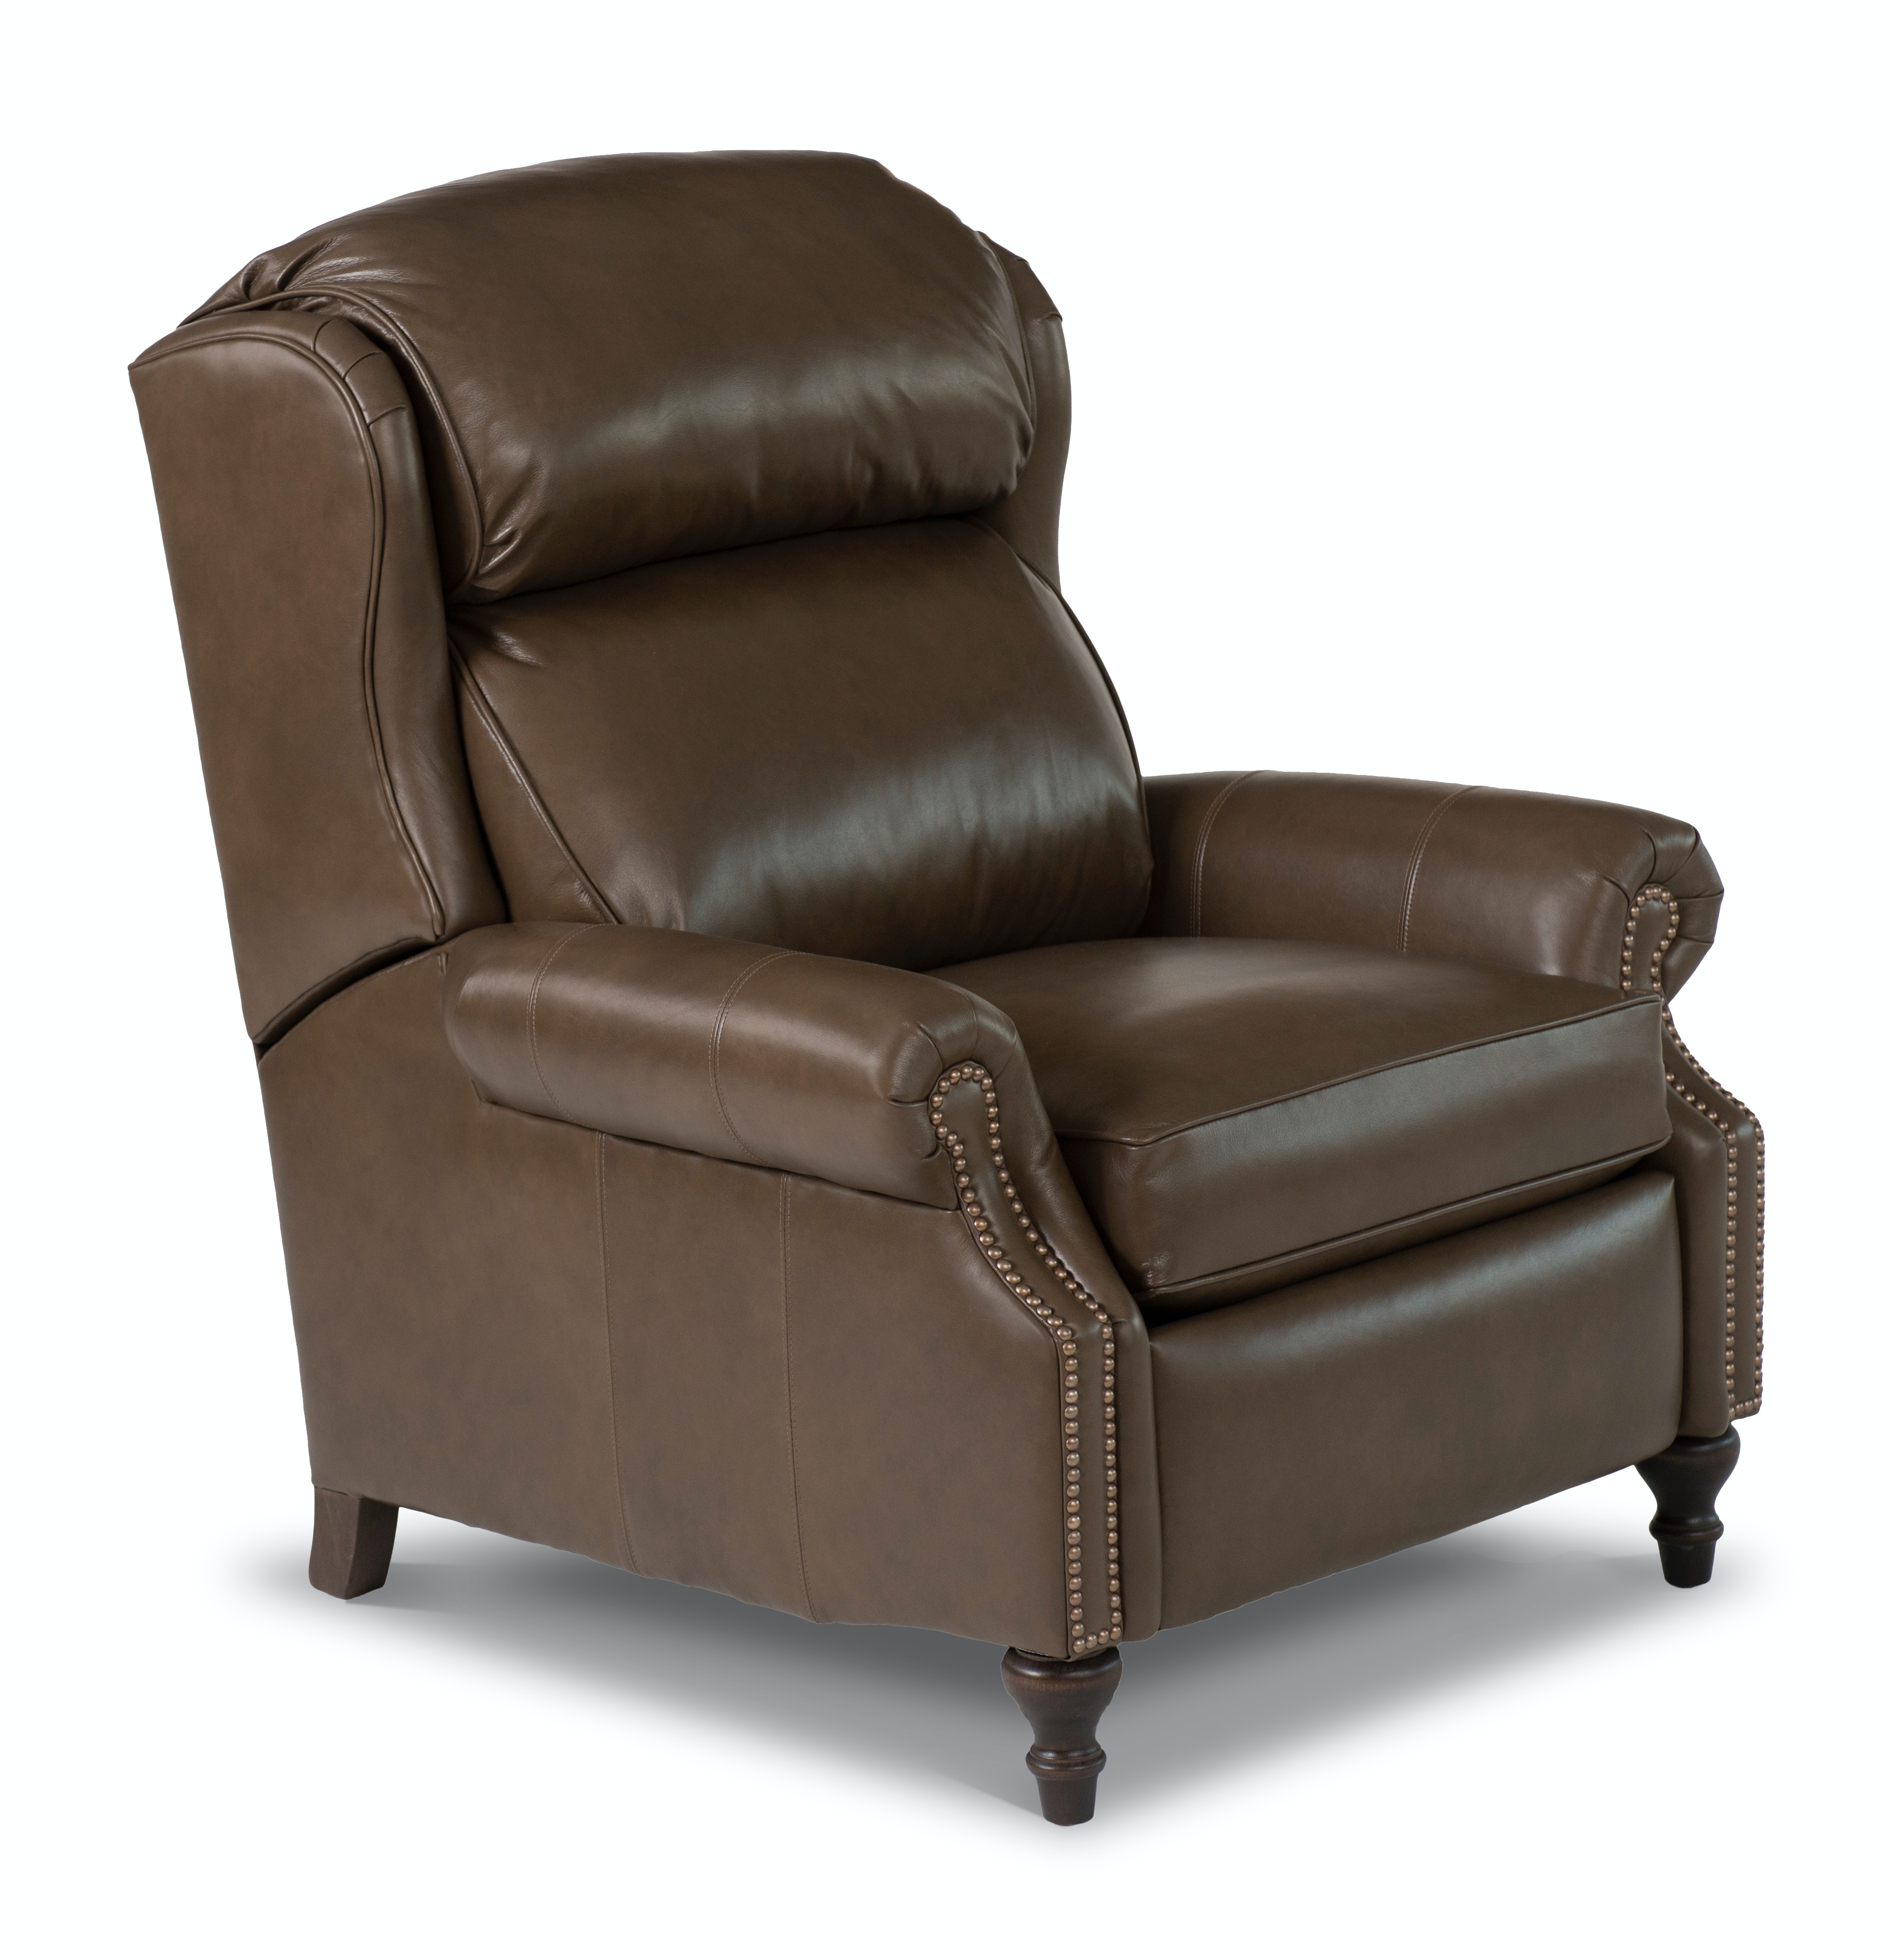 big and tall living room furniture ideas for wall decorations smith brothers motorized reclining chair 732 77